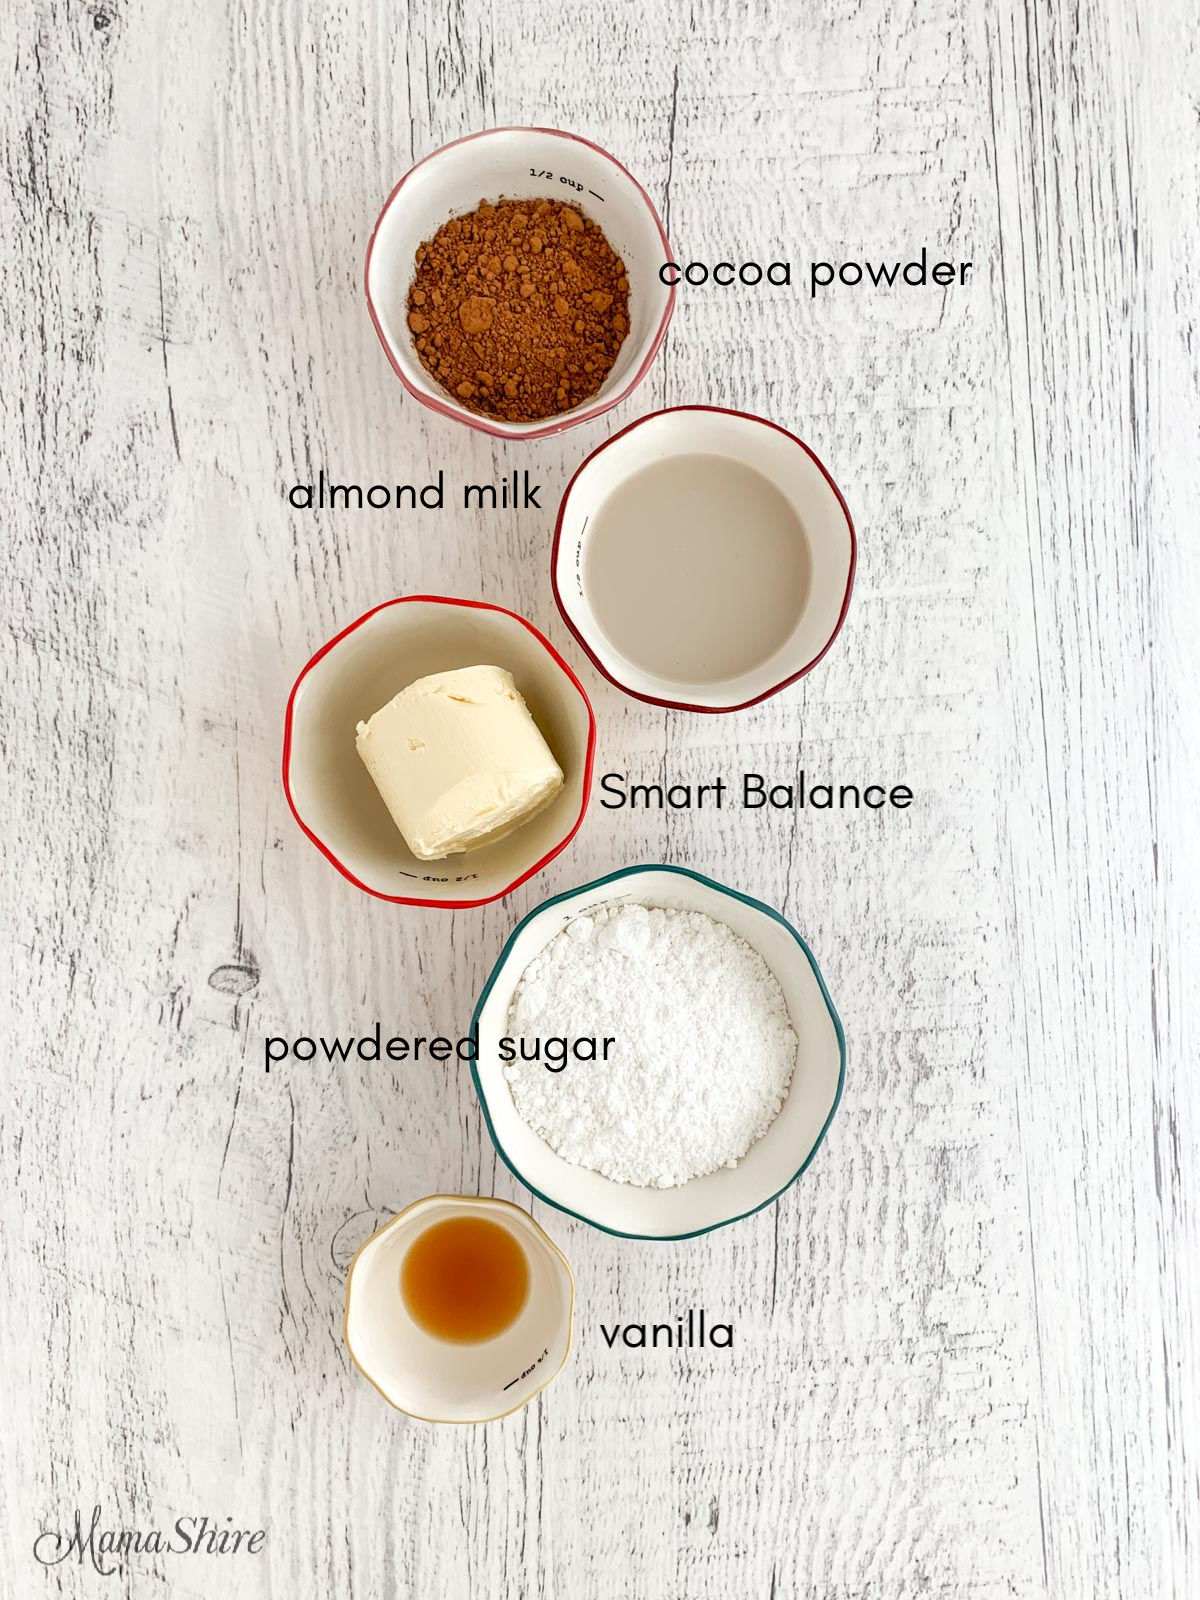 Ingredients in prep bowls for chocolate icing.